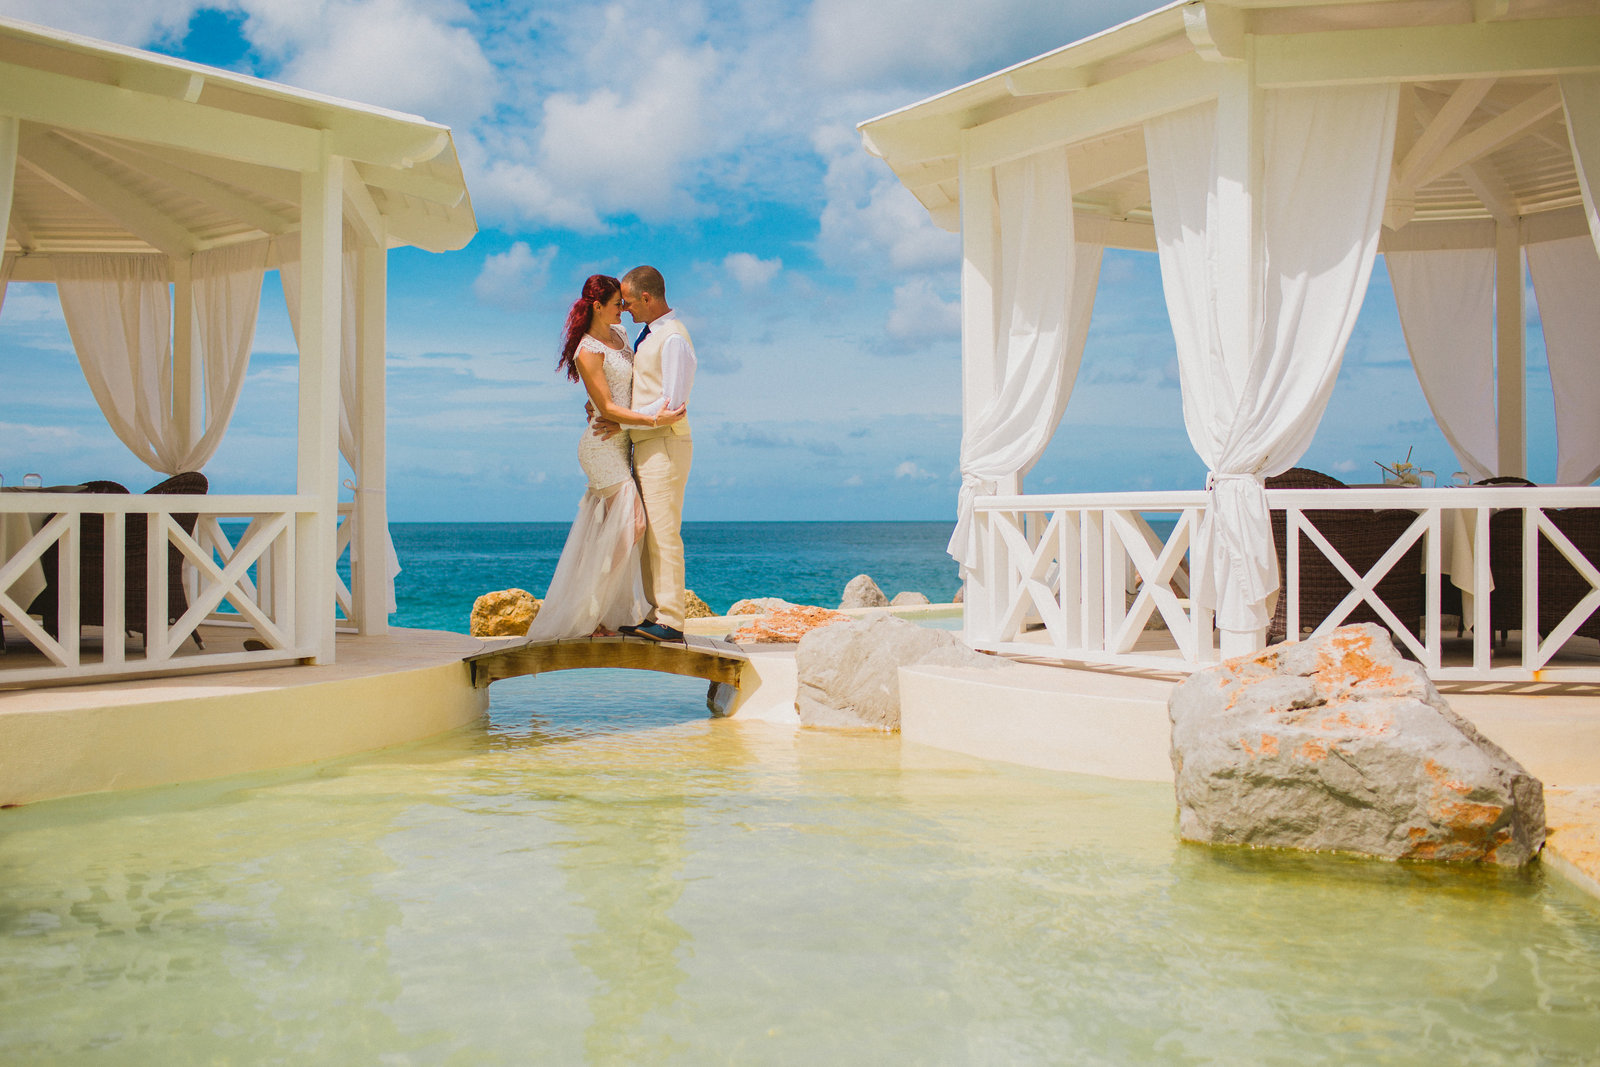 punta_cana_canada_intimate_wedding_dress_photographer_katya_nova_126